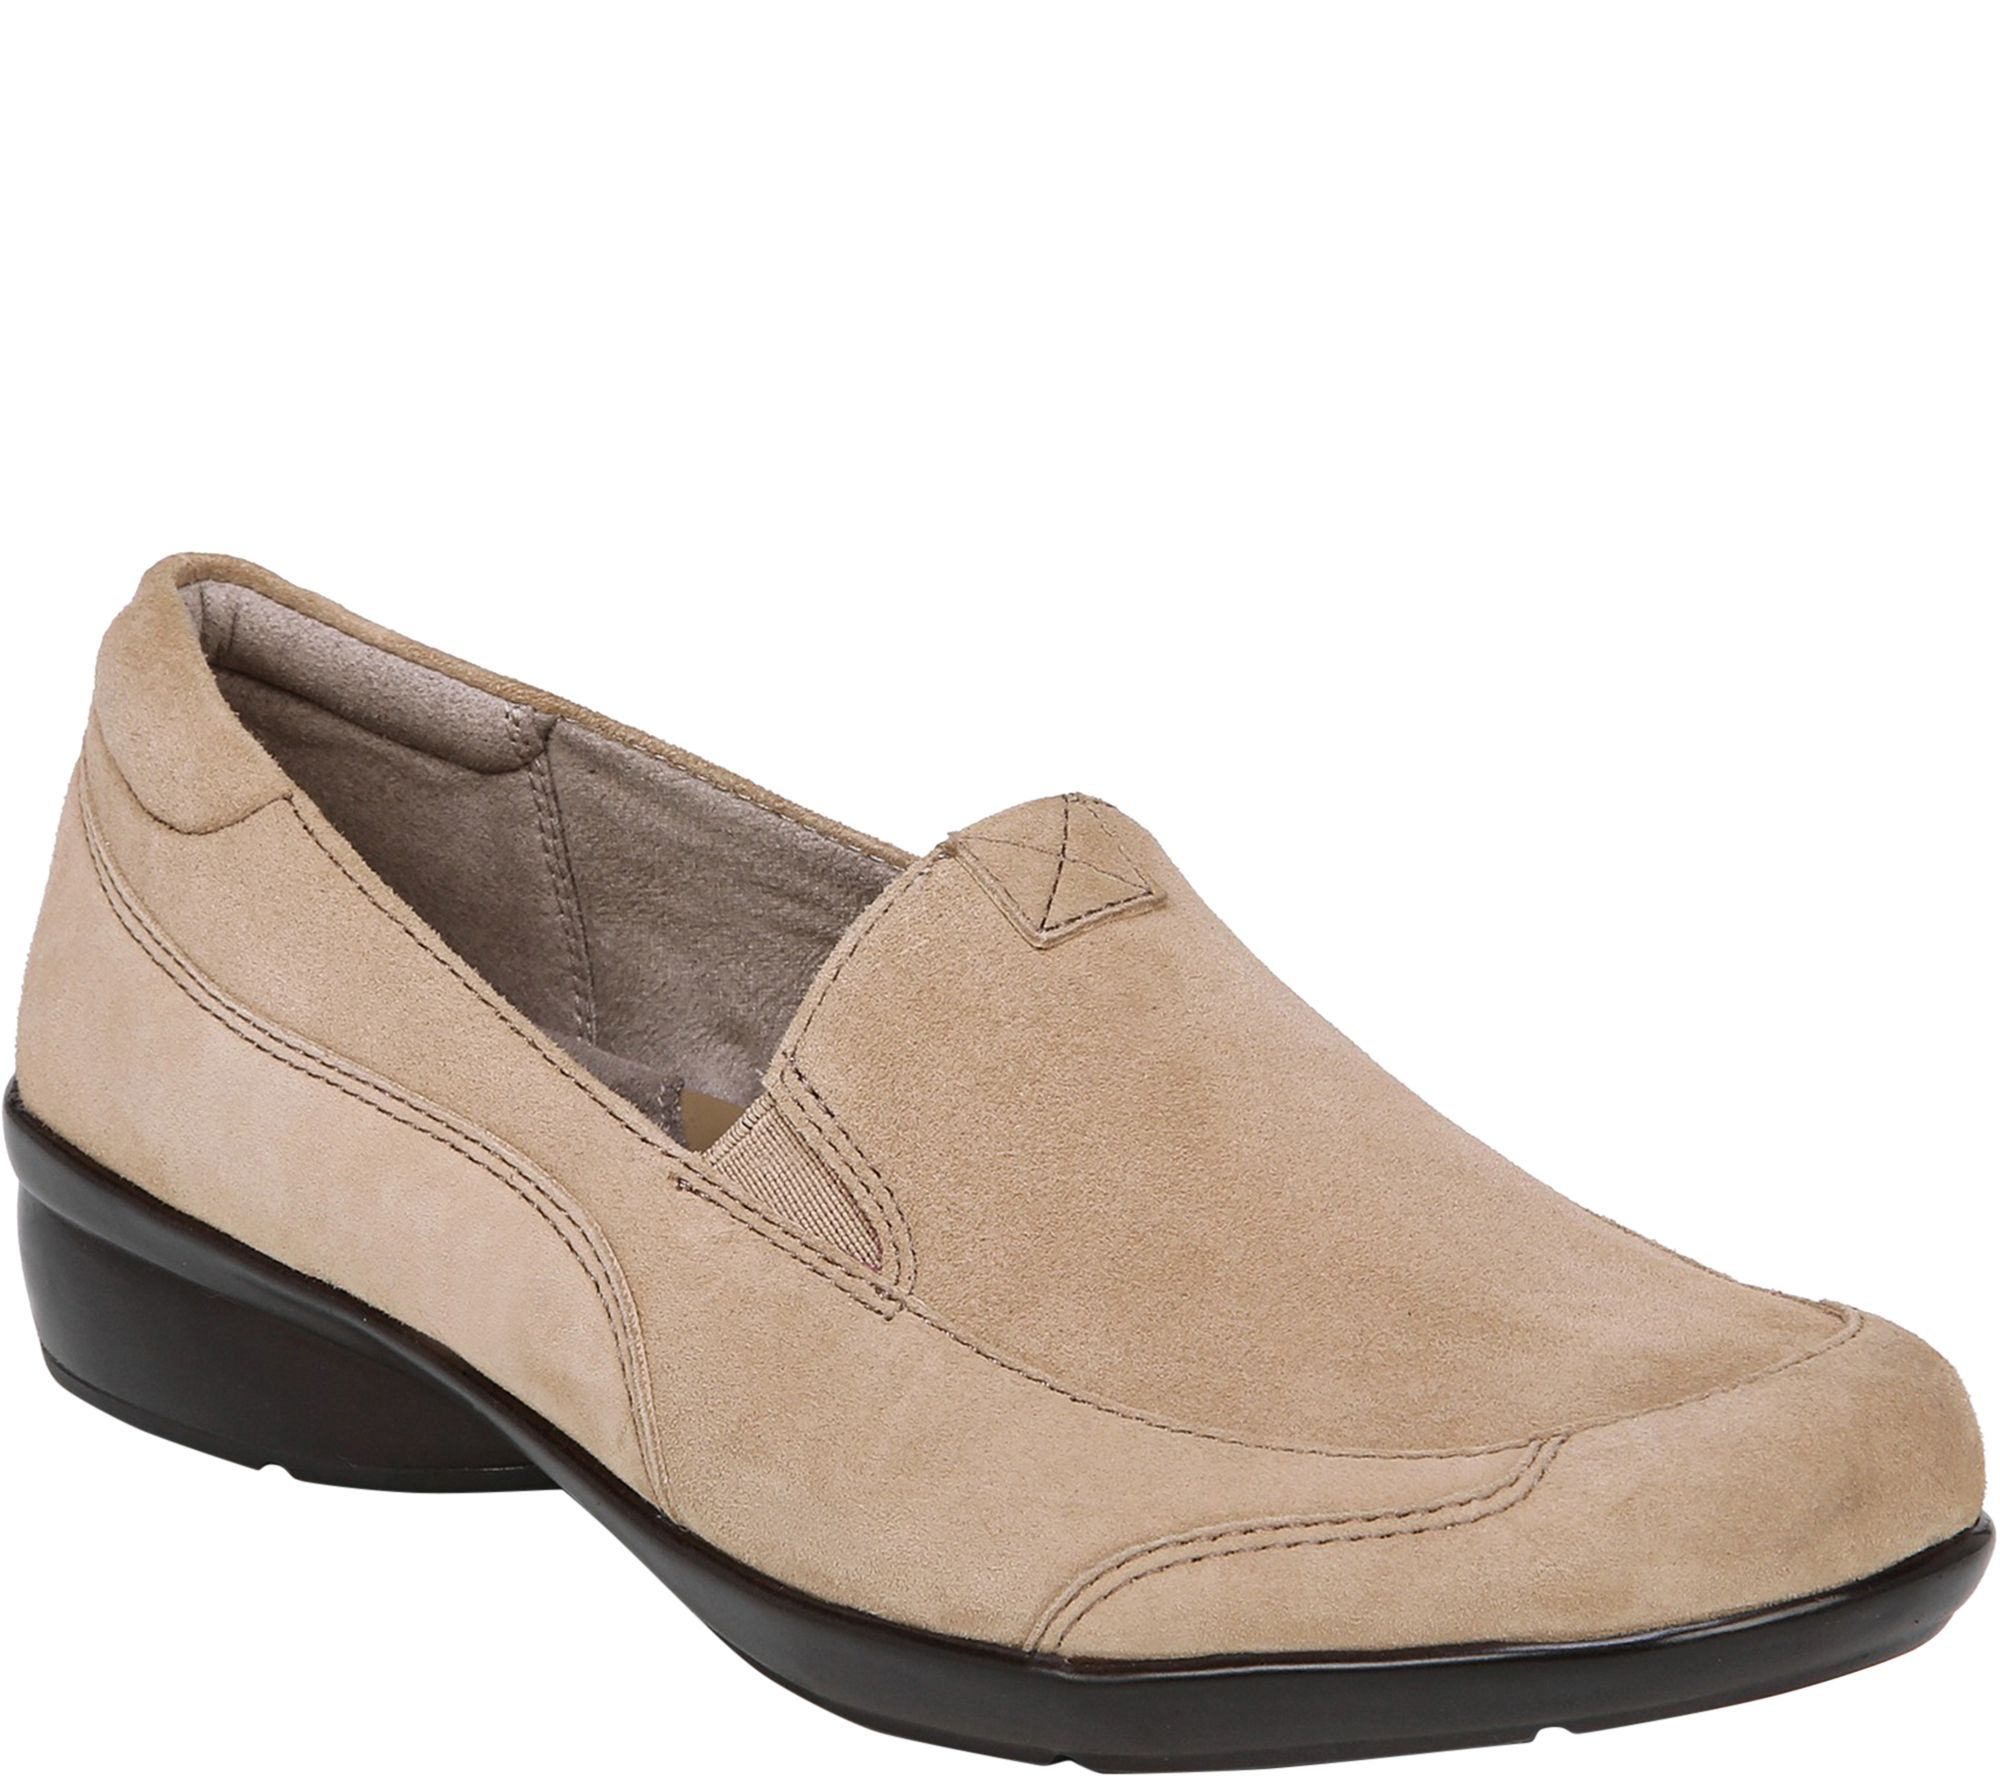 1e9c83fa392 Naturalizer Leather Slip On Loafers - Channing - Page 1 — QVC.com